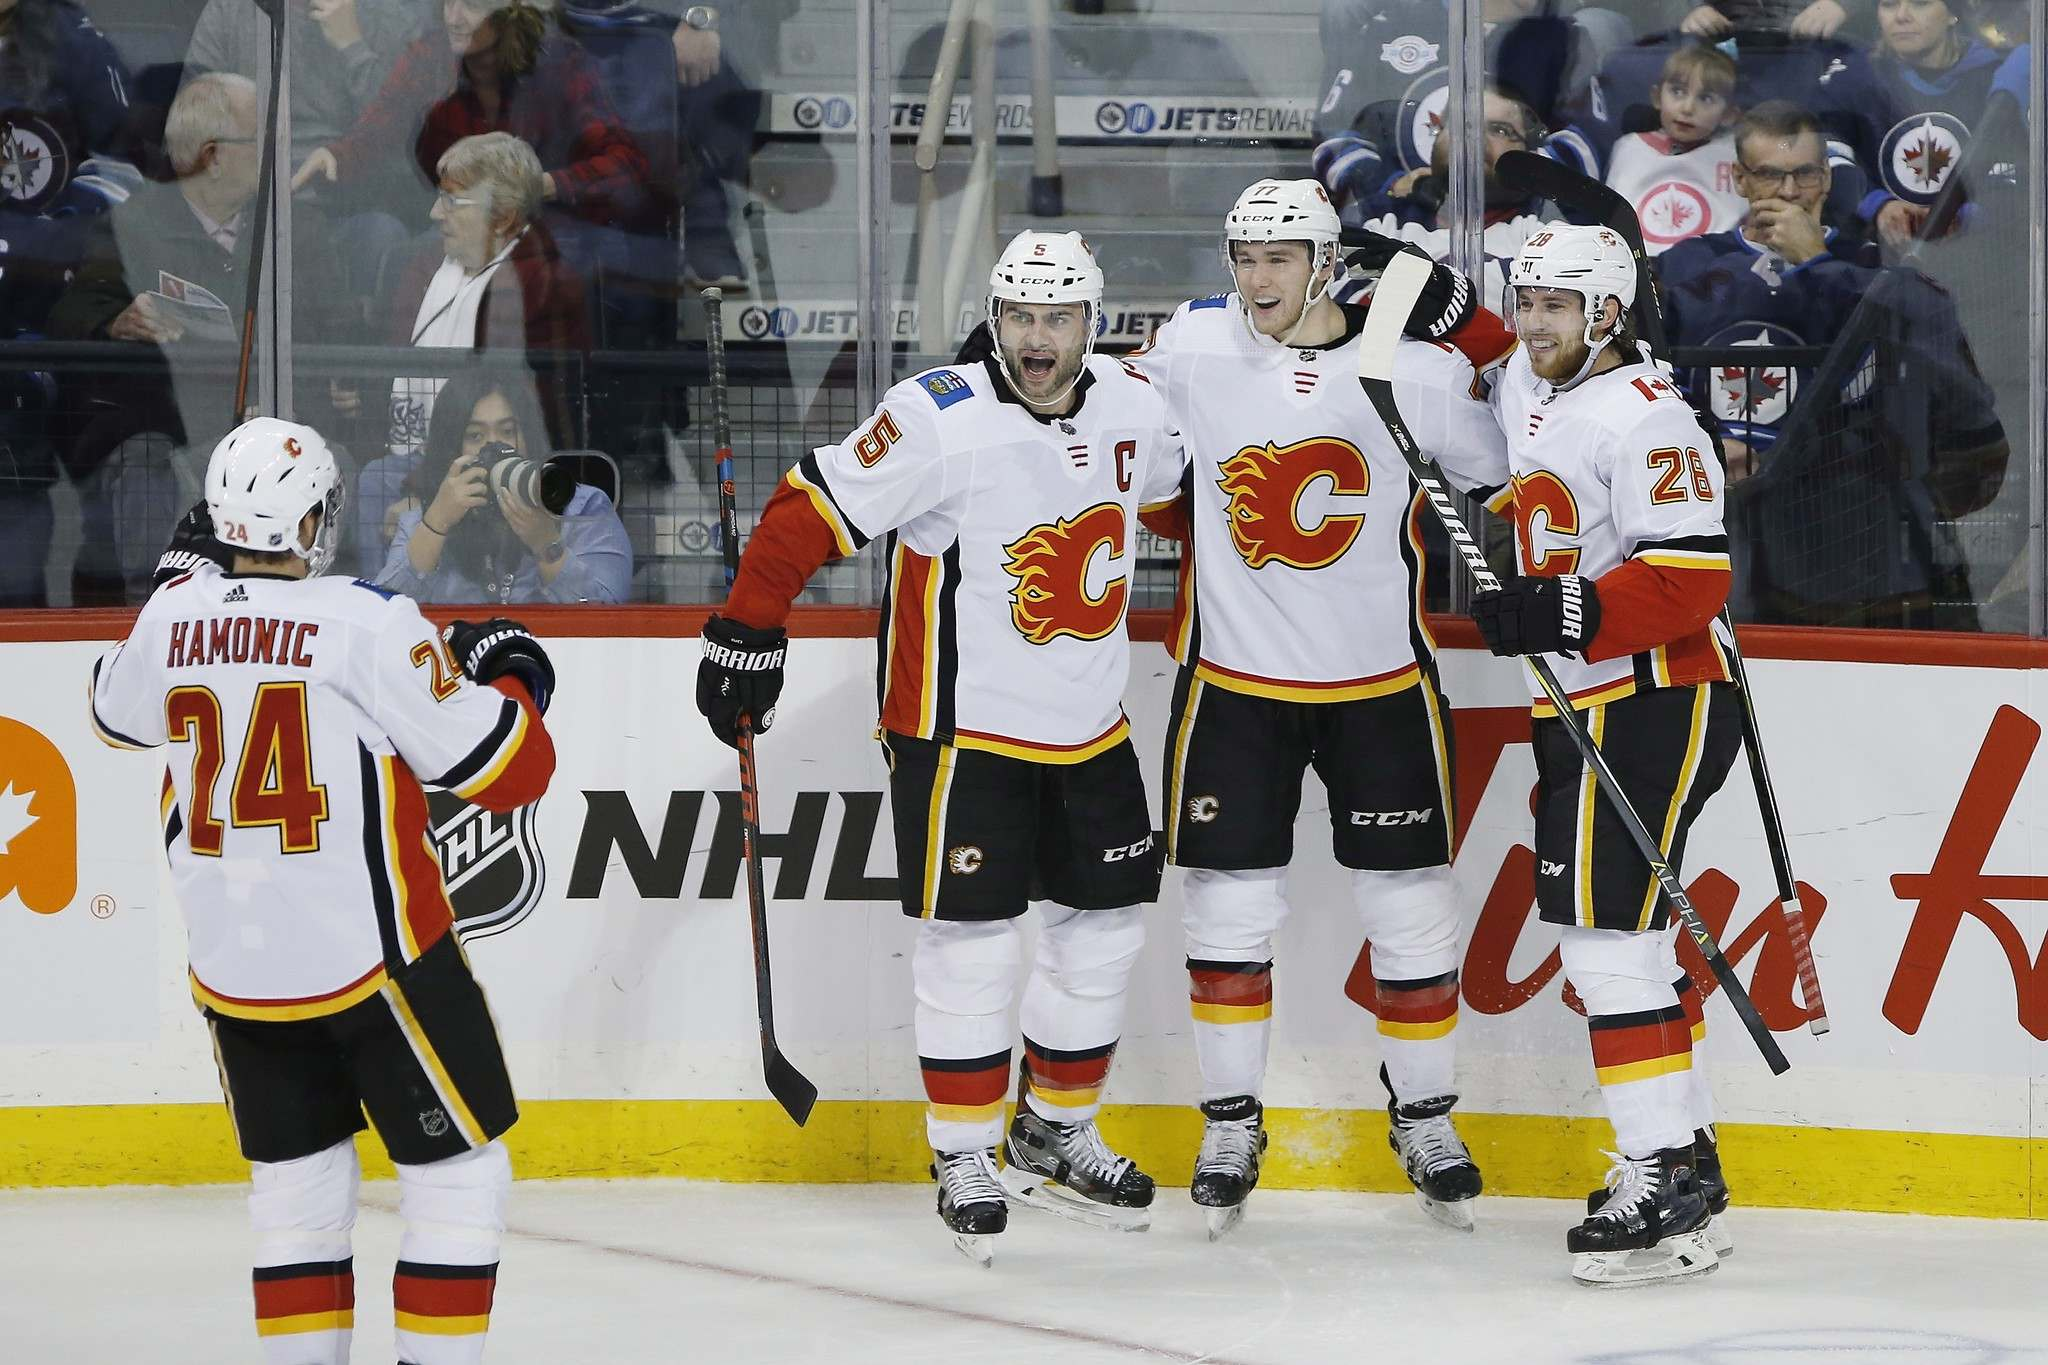 THE CANADIAN PRESS/John Woods</p><p>Calgary Flames players celebrate a goal against the Winnipeg Jets during the third period of their 4-1 victory over the Jets in Winnipeg last December. The Flames have owned the Jets so far this season and Winnipeg hopes to prevent a season sweep of the series when the Flames come to town Saturday.</p>